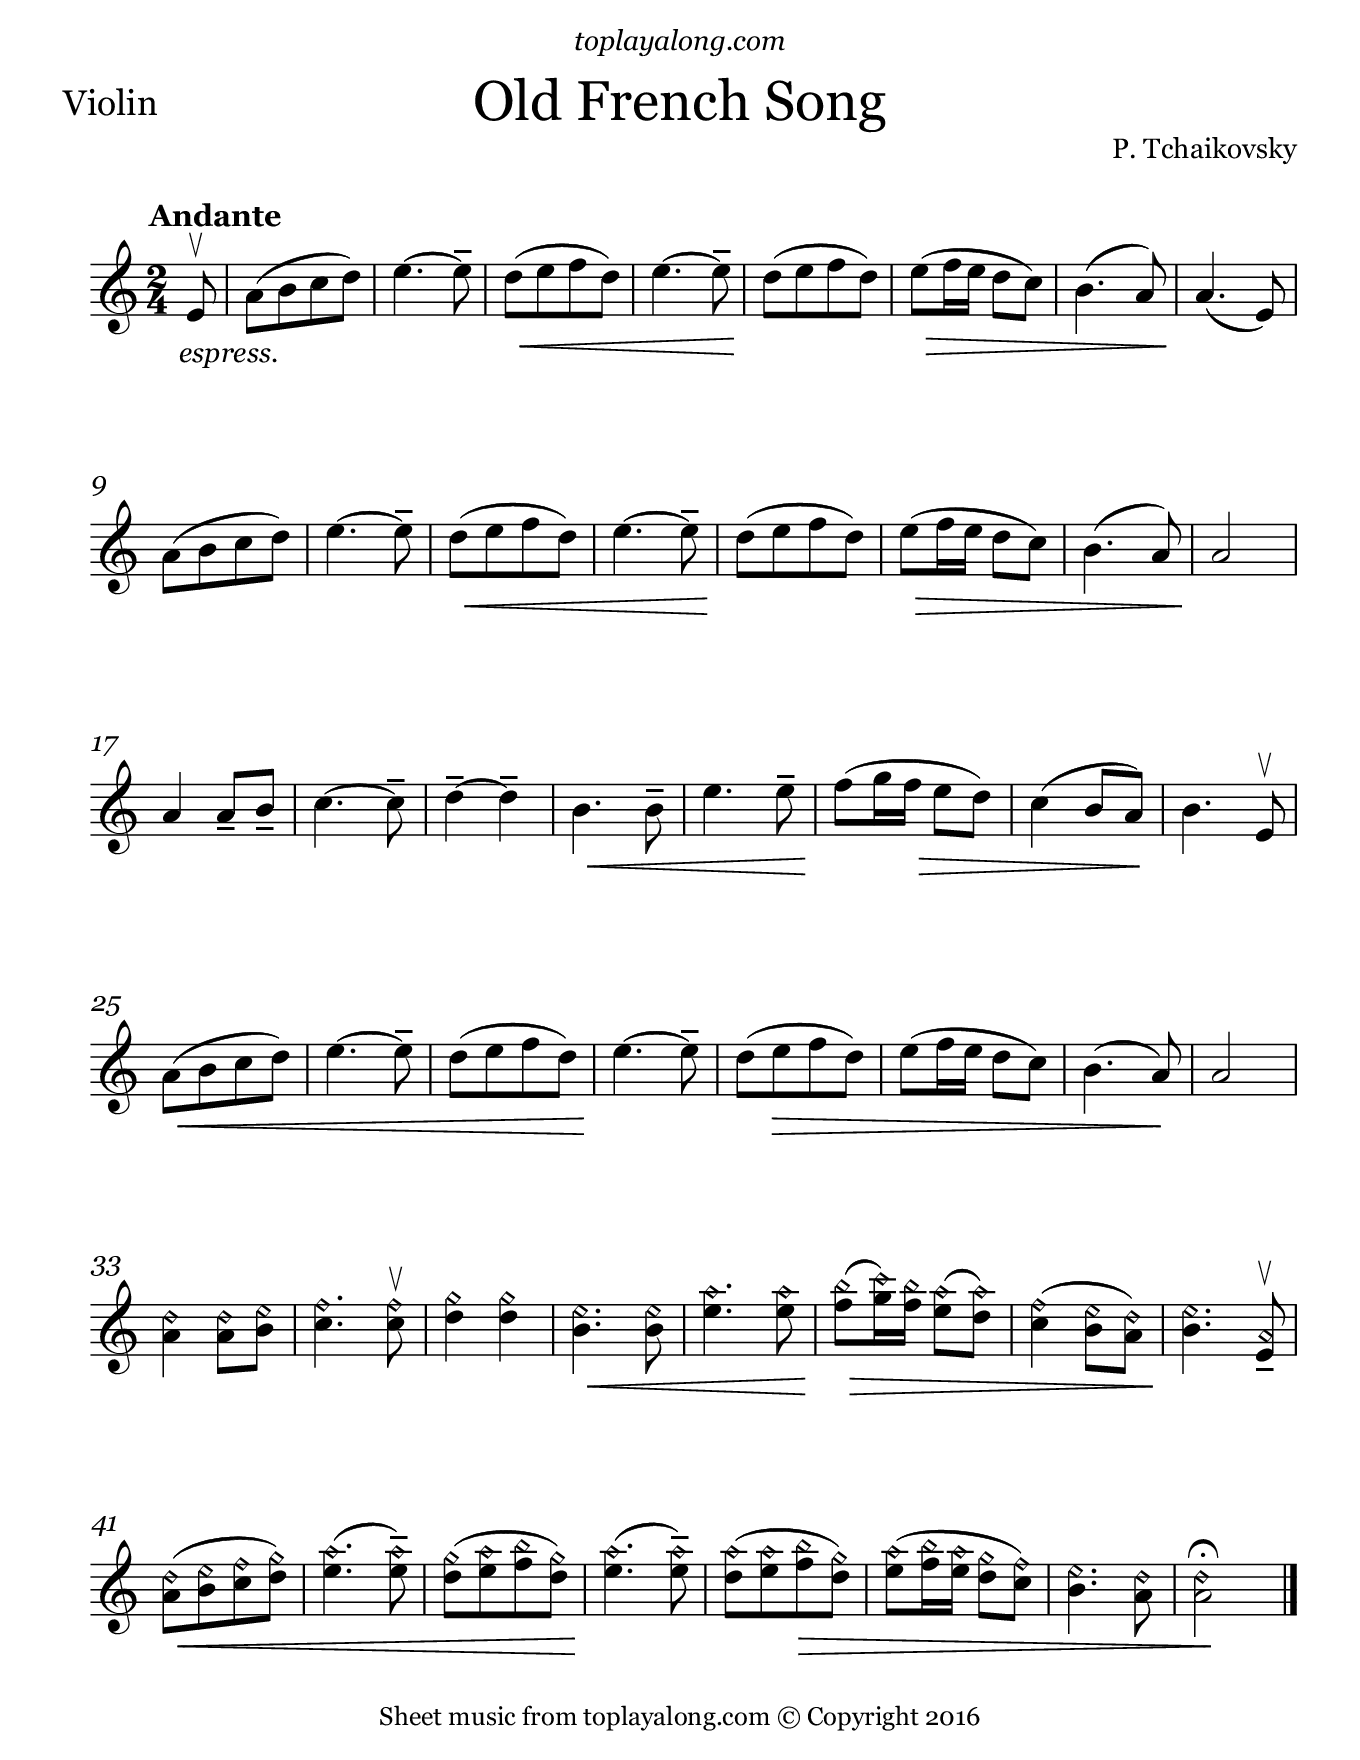 Old French Song by Tchaikovsky. Sheet music for Violin, page 1.